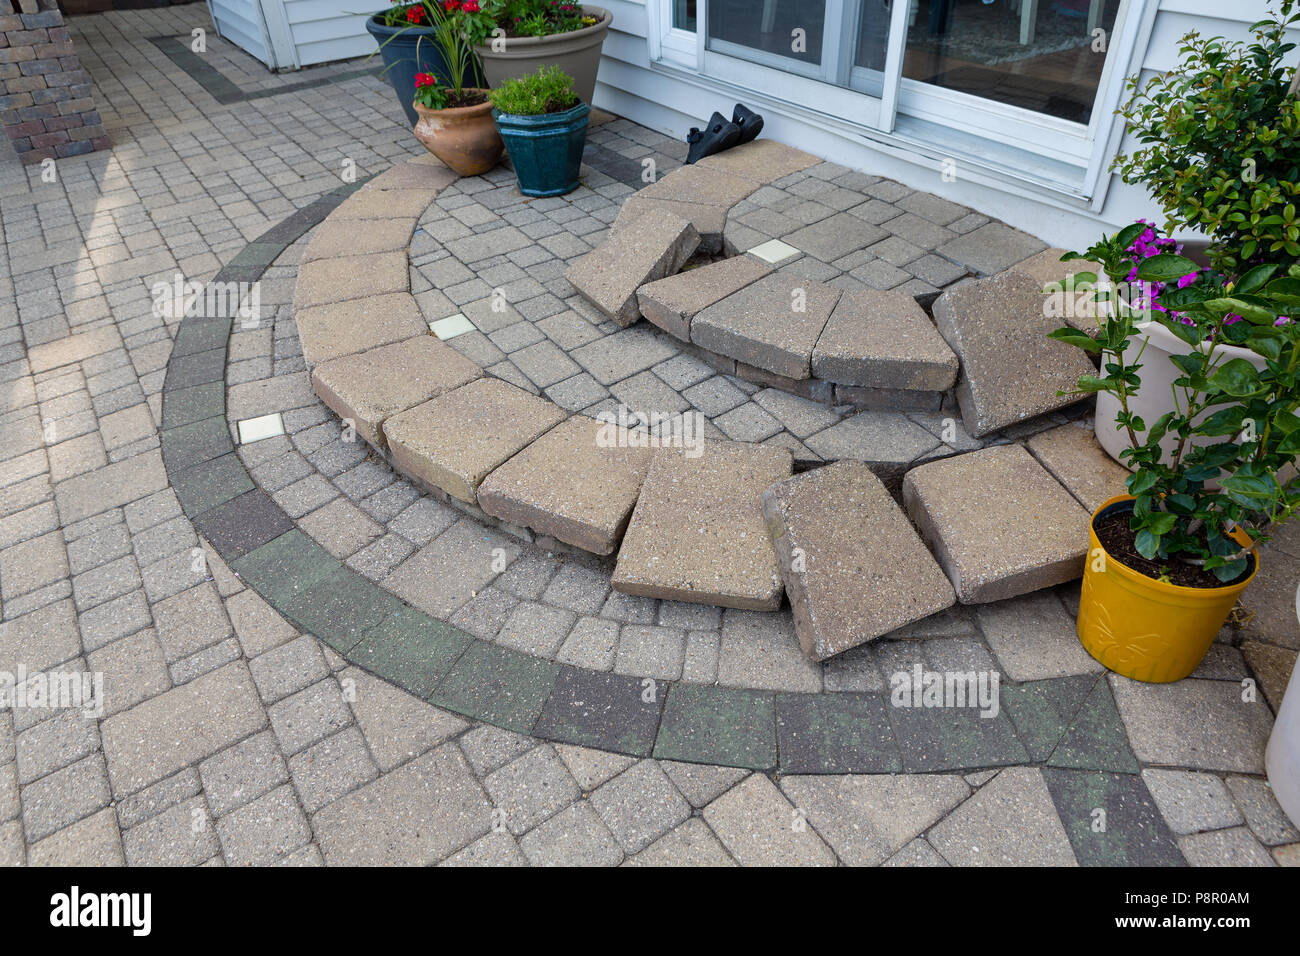 https www alamy com replacing paving edging bricks on curved patio steps in front of the door to the house with them all laid neatly in position to commence work image211946860 html